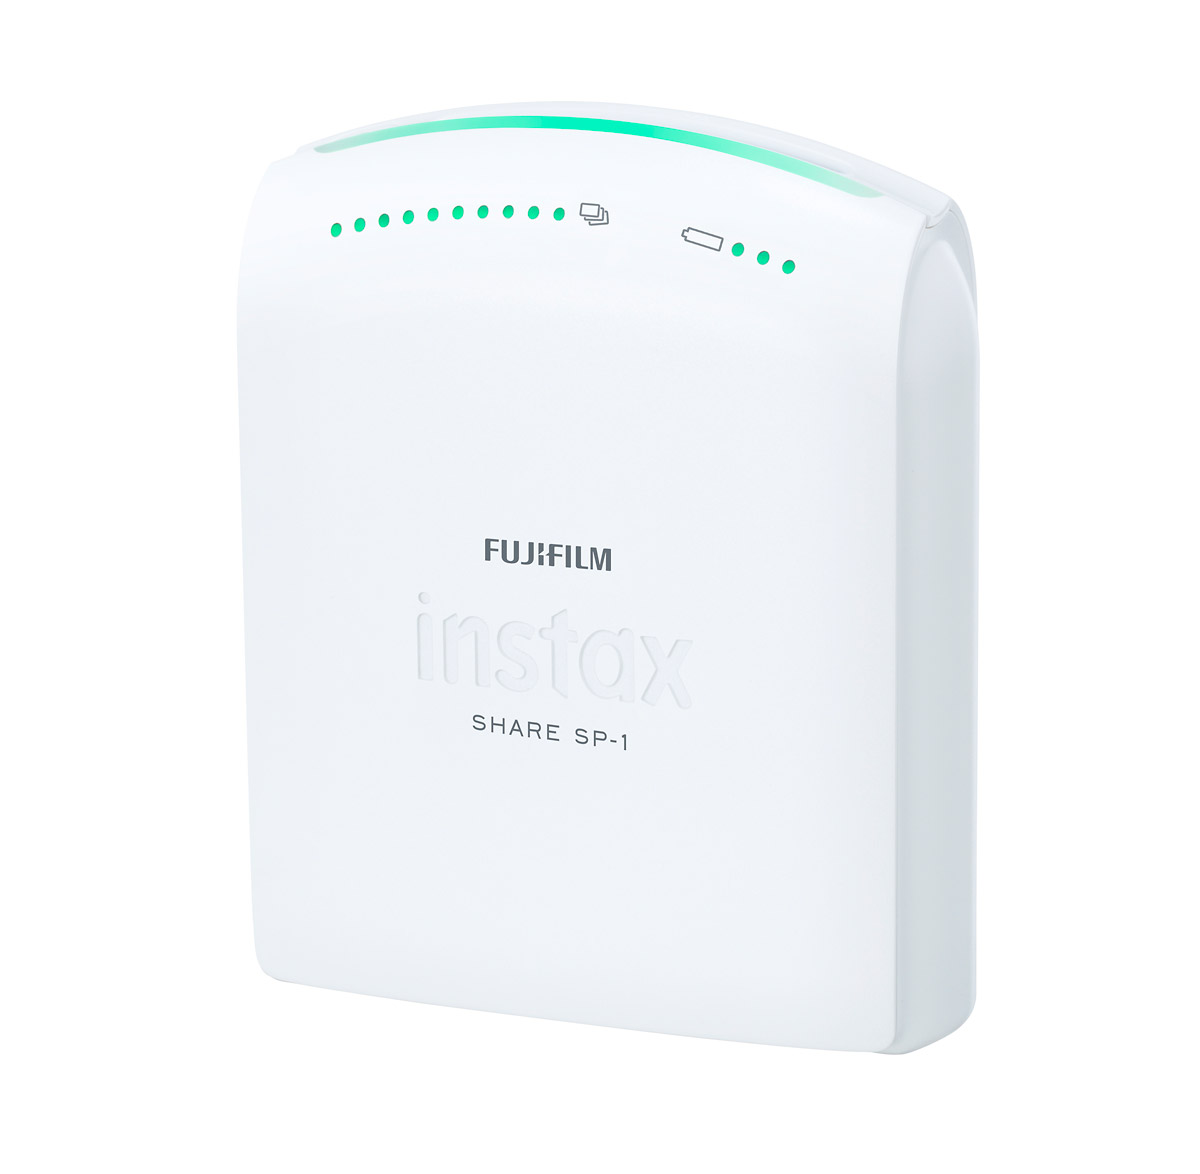 Fujifilm Instax Share SP-1 Wi-Fi Instant Printer